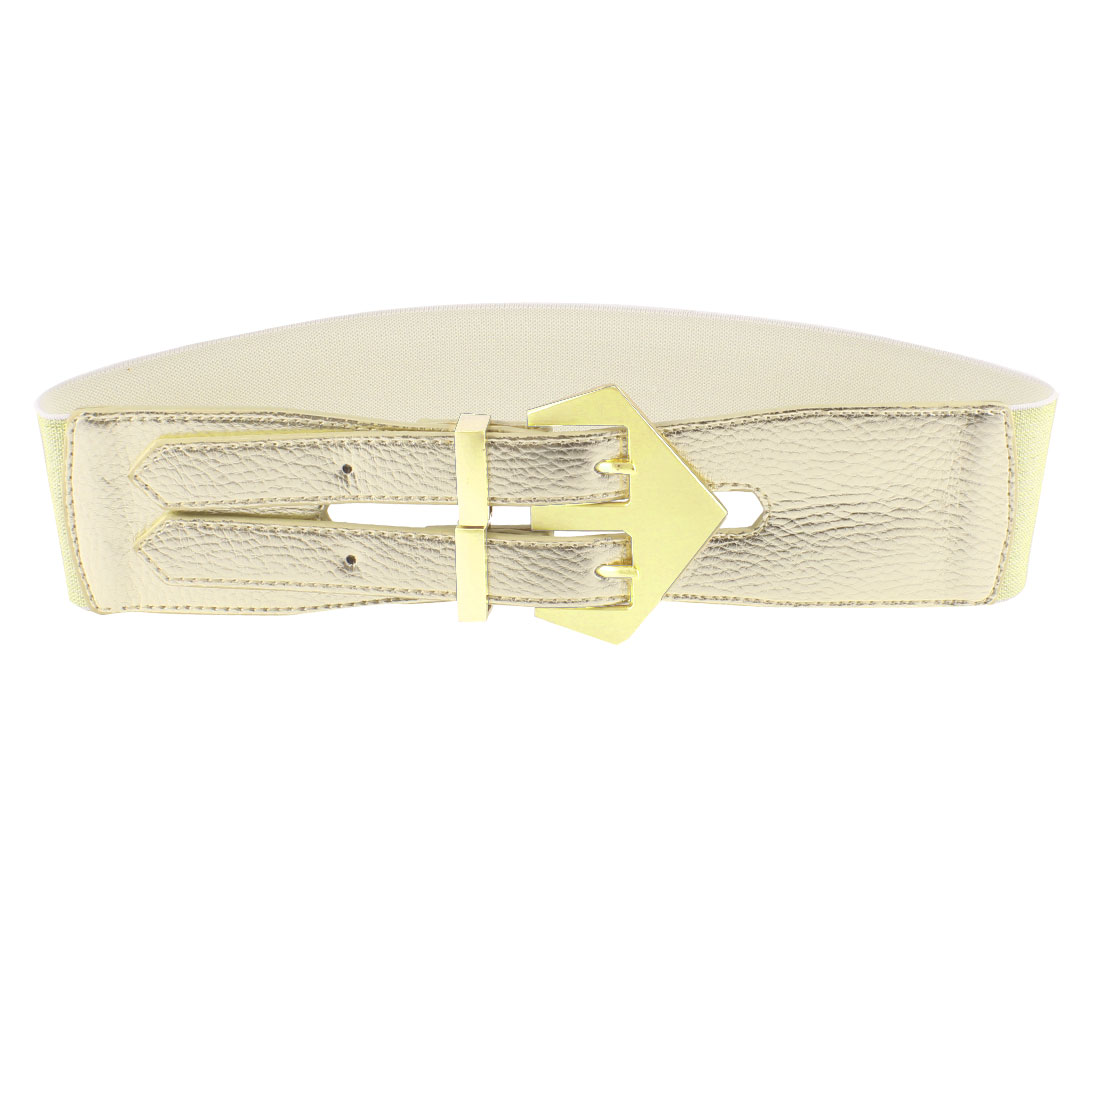 Double Pin Buckle 6cm Wide Adjustable Elastic Belt Gold Tone for Ladies